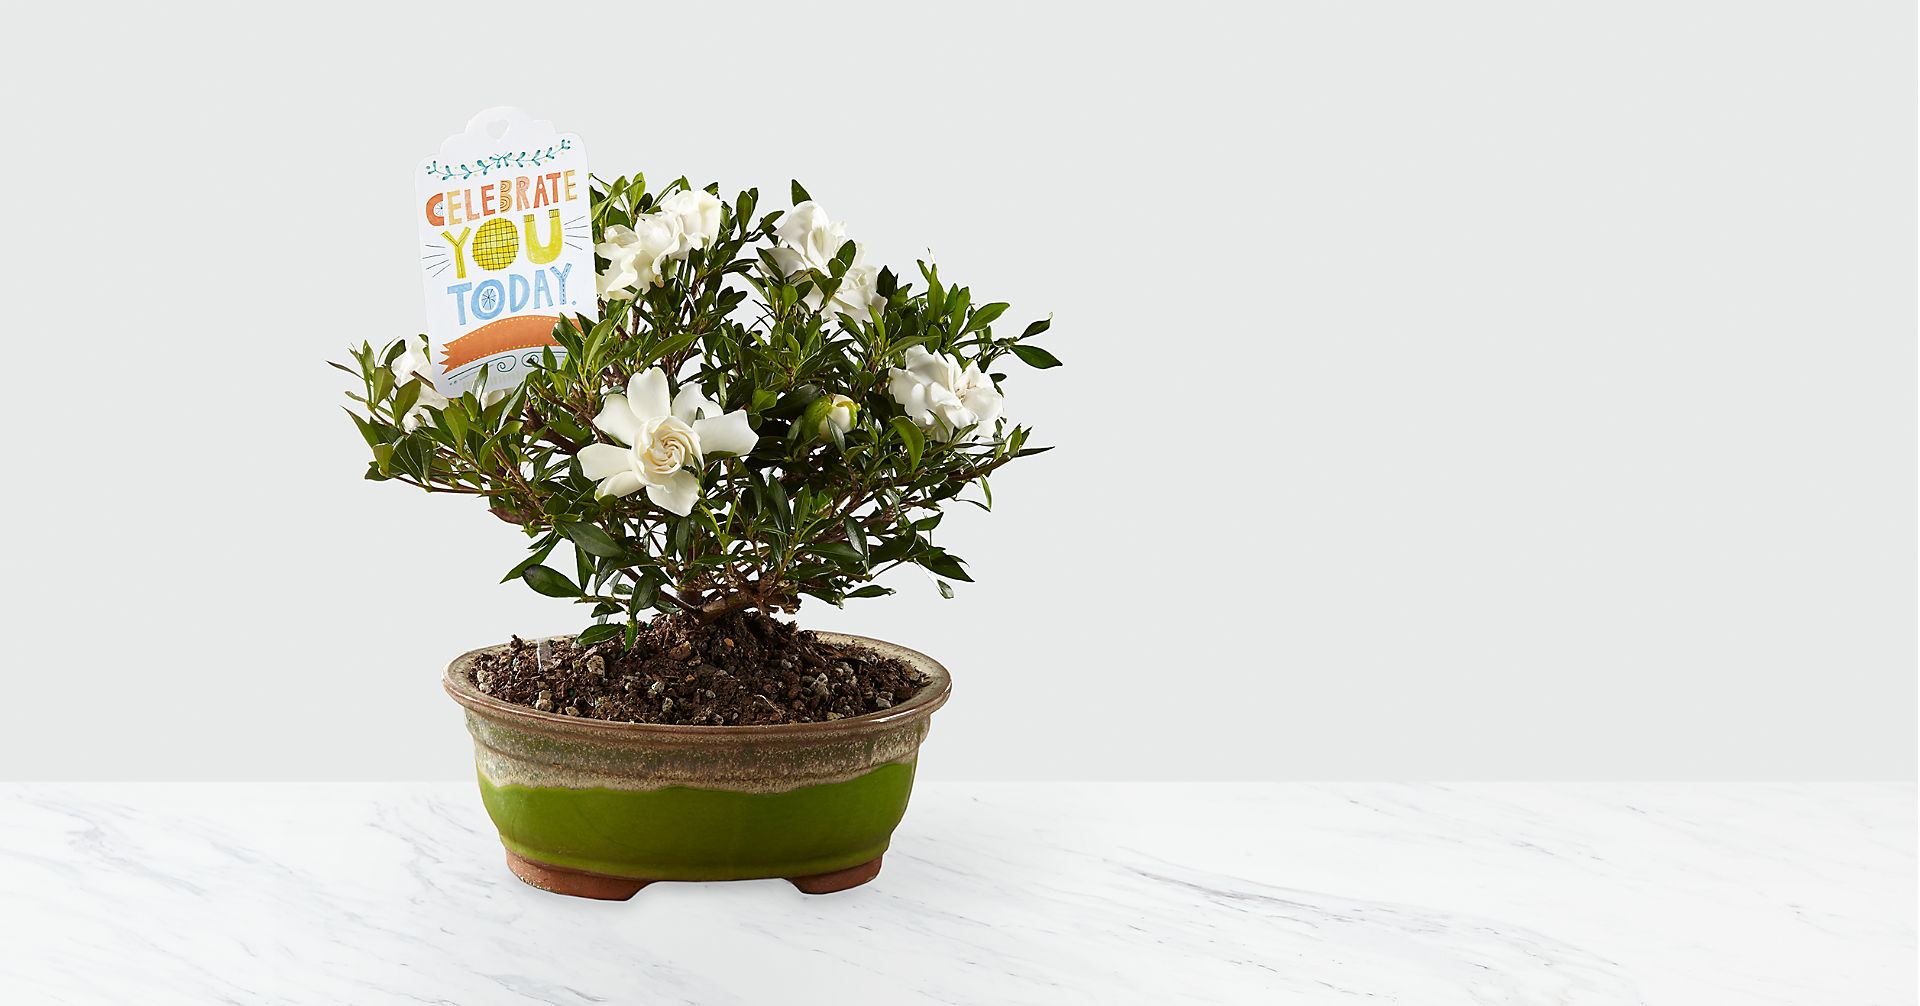 Celebrate You Gardenia Bonsai by Hallmark - Image 1 Of 2